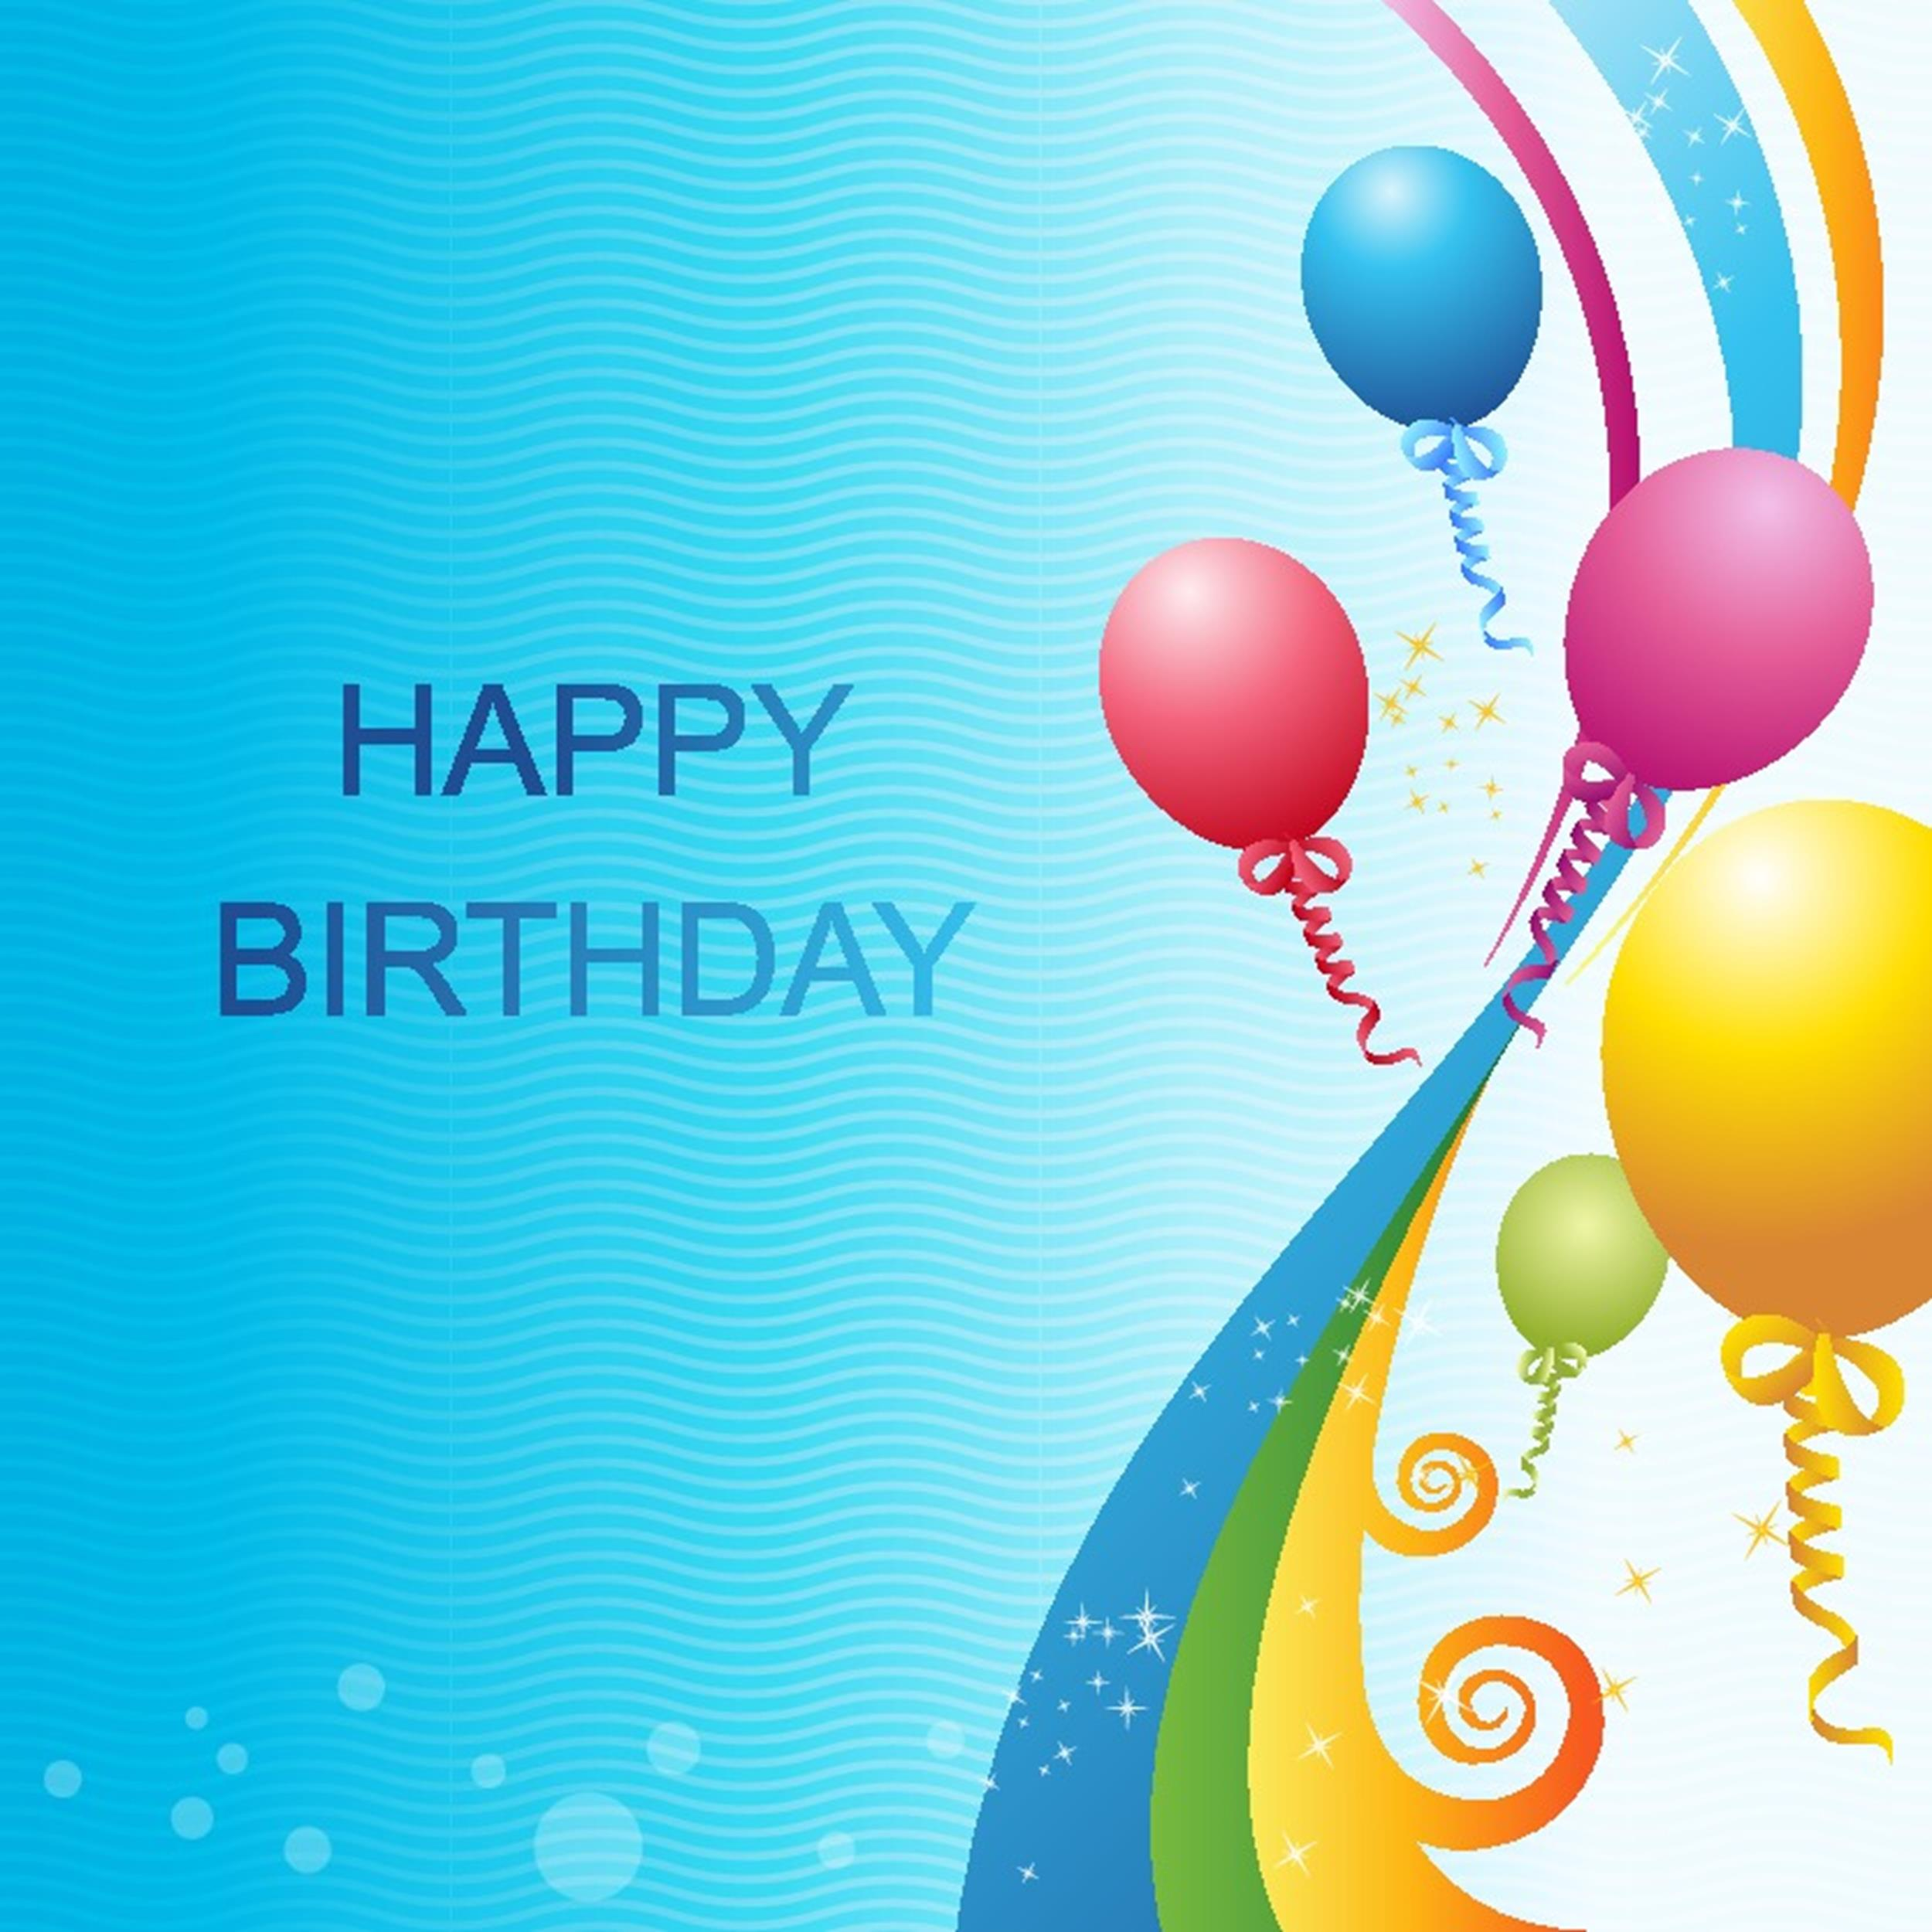 Free birthday card template 12